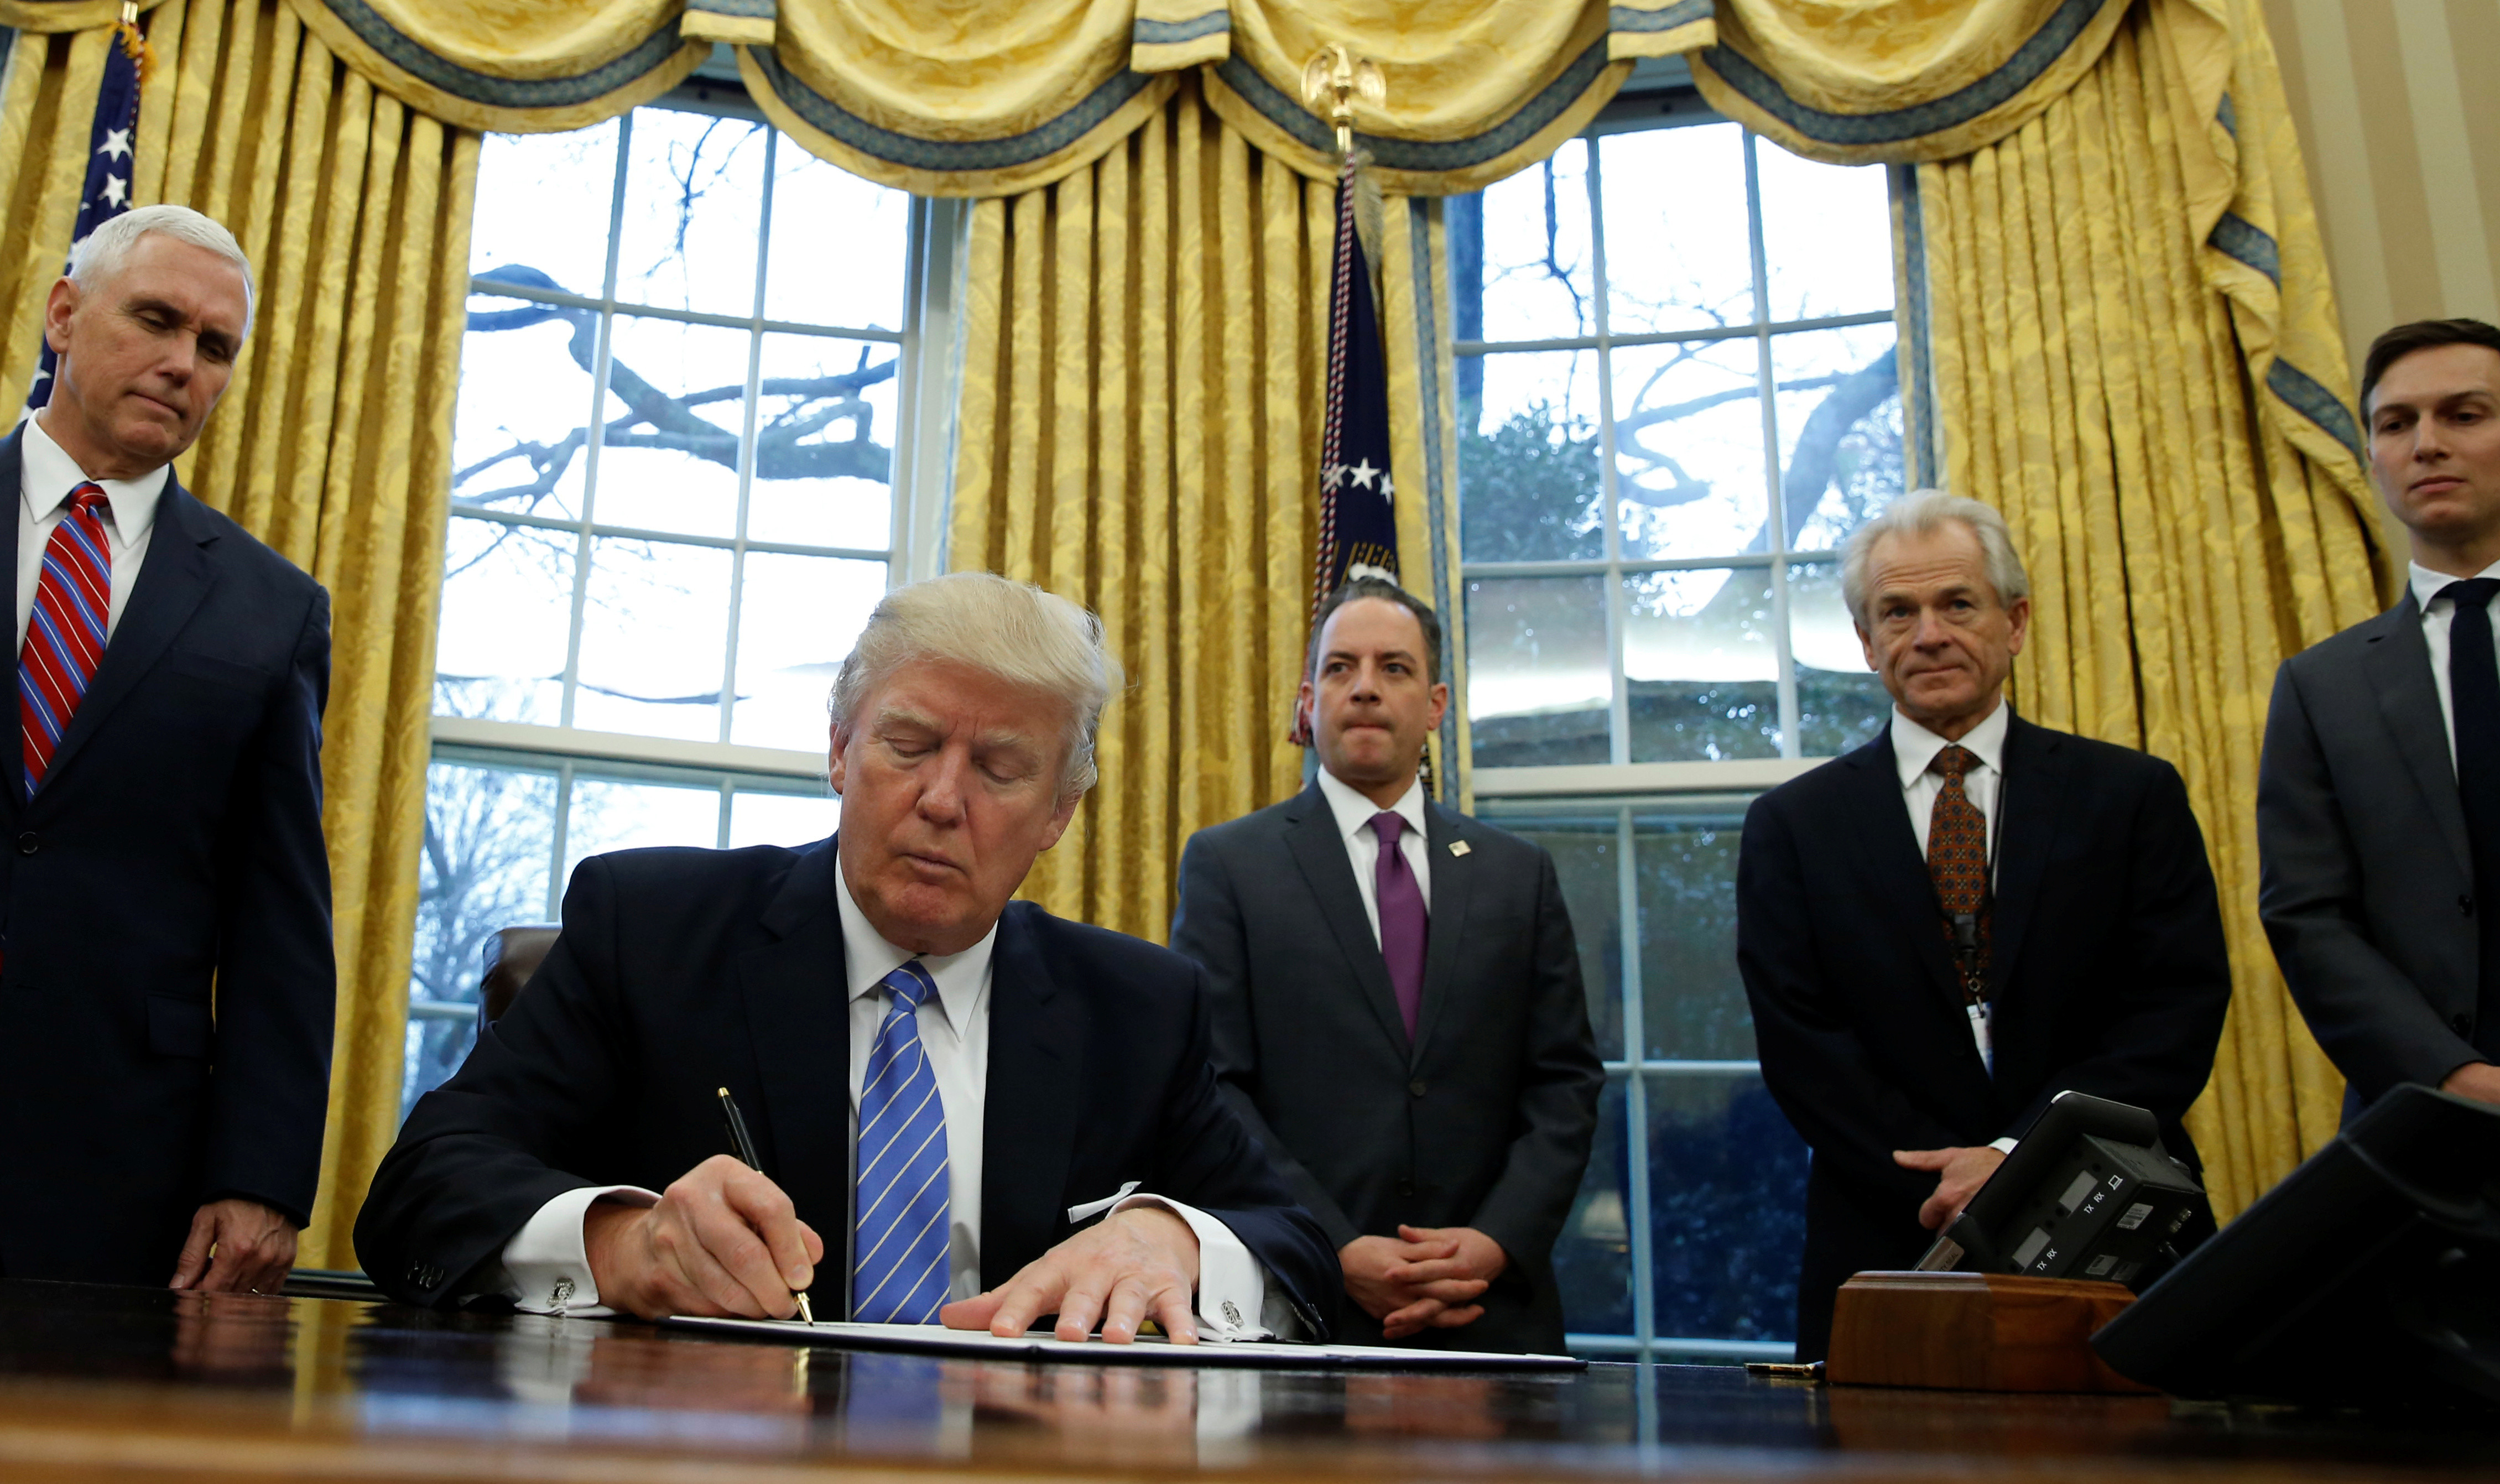 U.S. President Donald Trump, watched by (L-R) Vice President Mike Pence, White House Chief of Staff Reince Priebus, head of the White House Trade Council Peter Navarro and senior advisor Jared Kushner, signs an executive order that places a hiring freeze on non-military federal workers in the Oval Office of the White House in Washington January 23, 2017.   REUTERS/Kevin Lamarque - RTSX01K